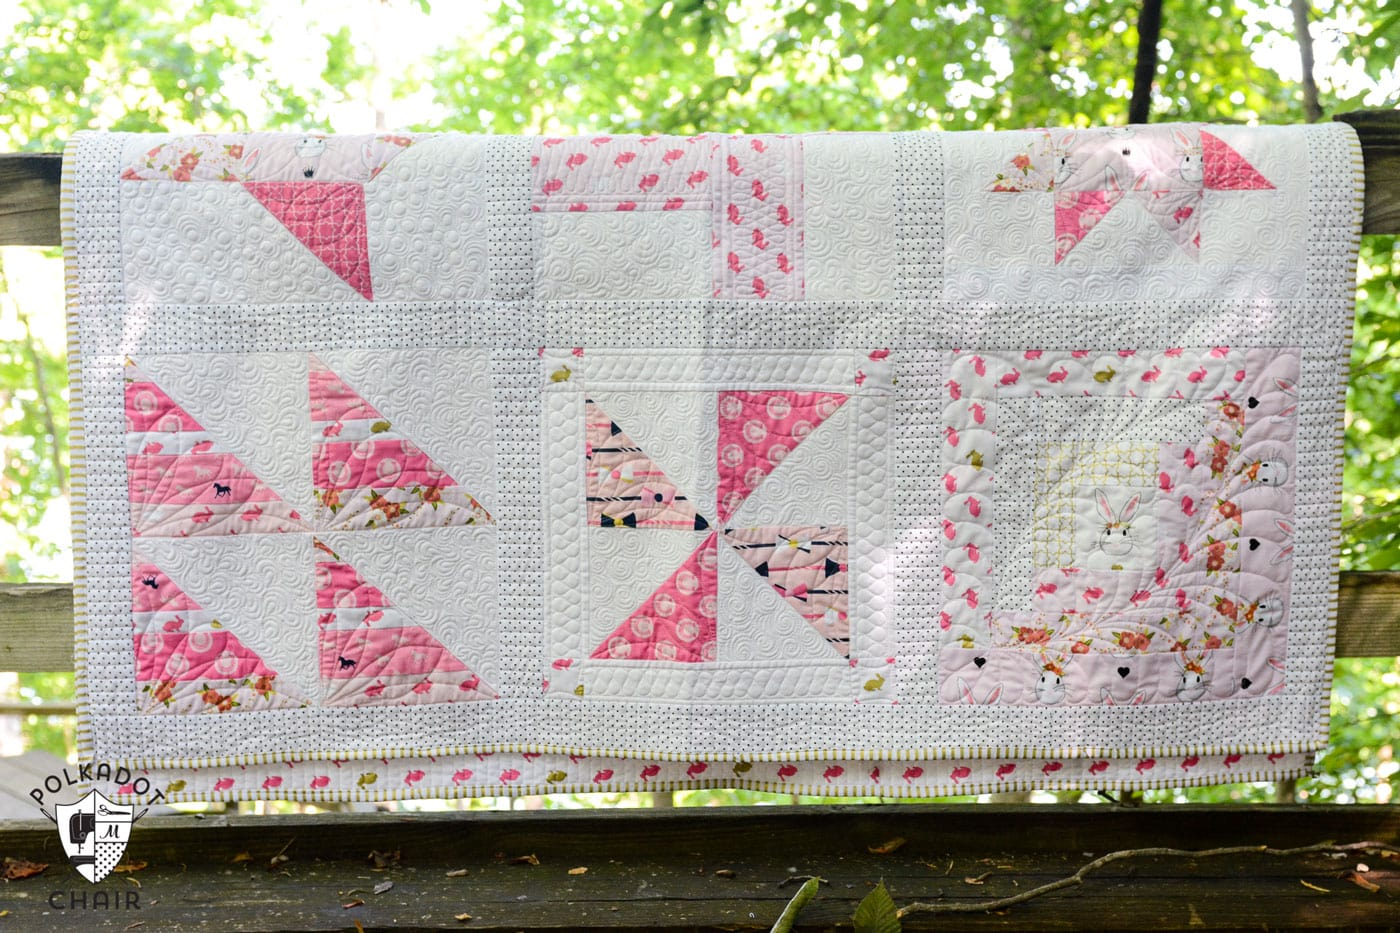 Completed Sampler Quilt made from free Block of the Month quilt blocks on polkadotchair.com